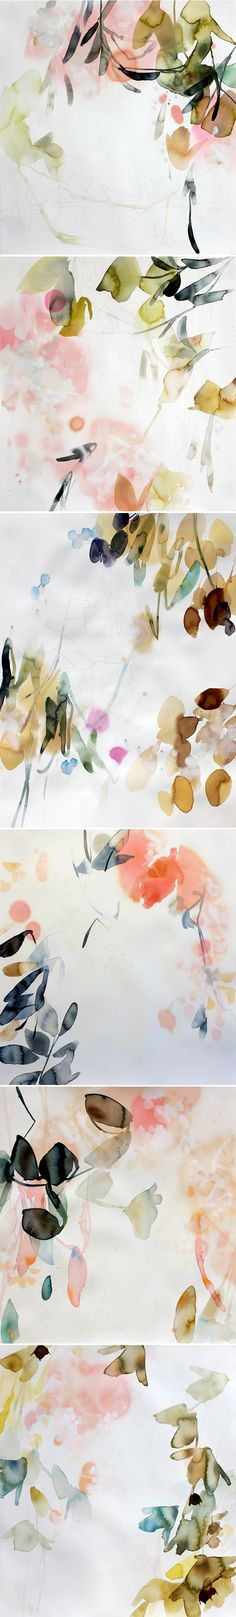 watercolor and pencil on paper by elise morris